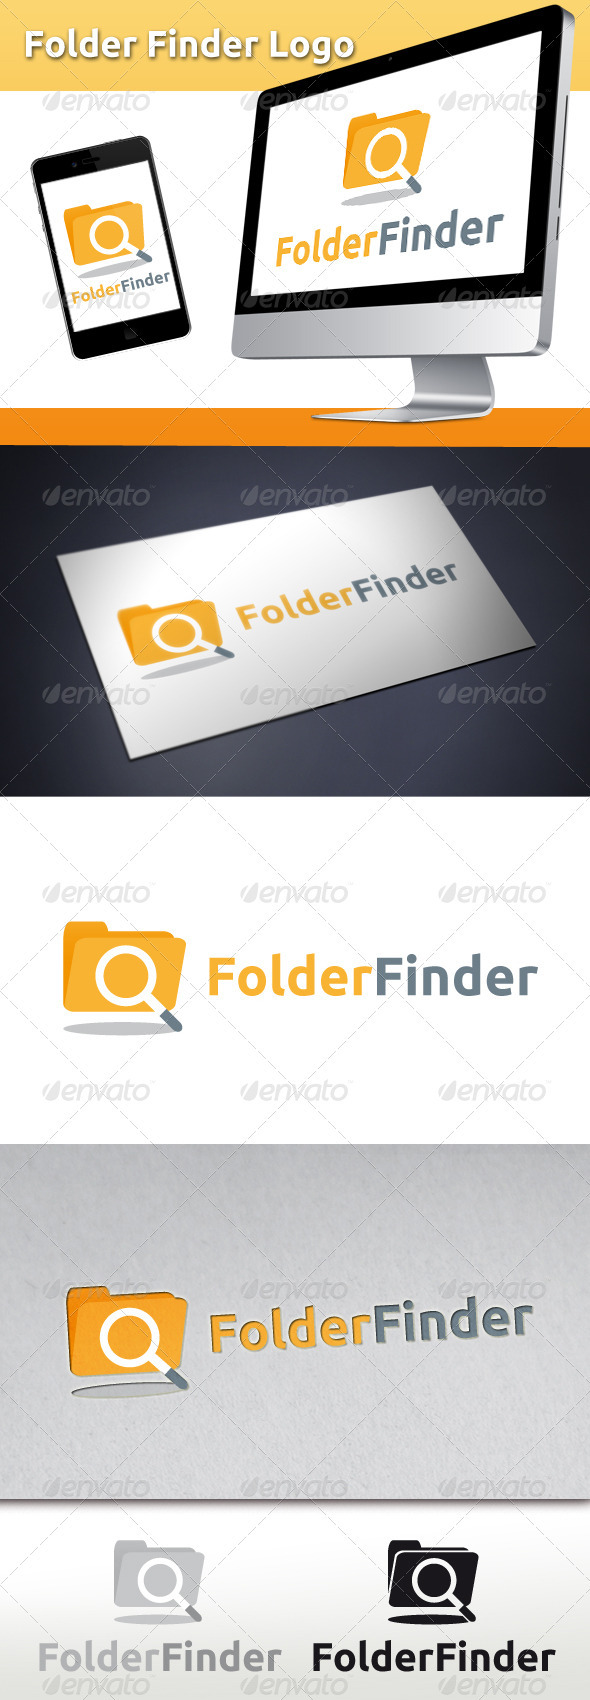 Folder Finder Logo - Symbols Logo Templates